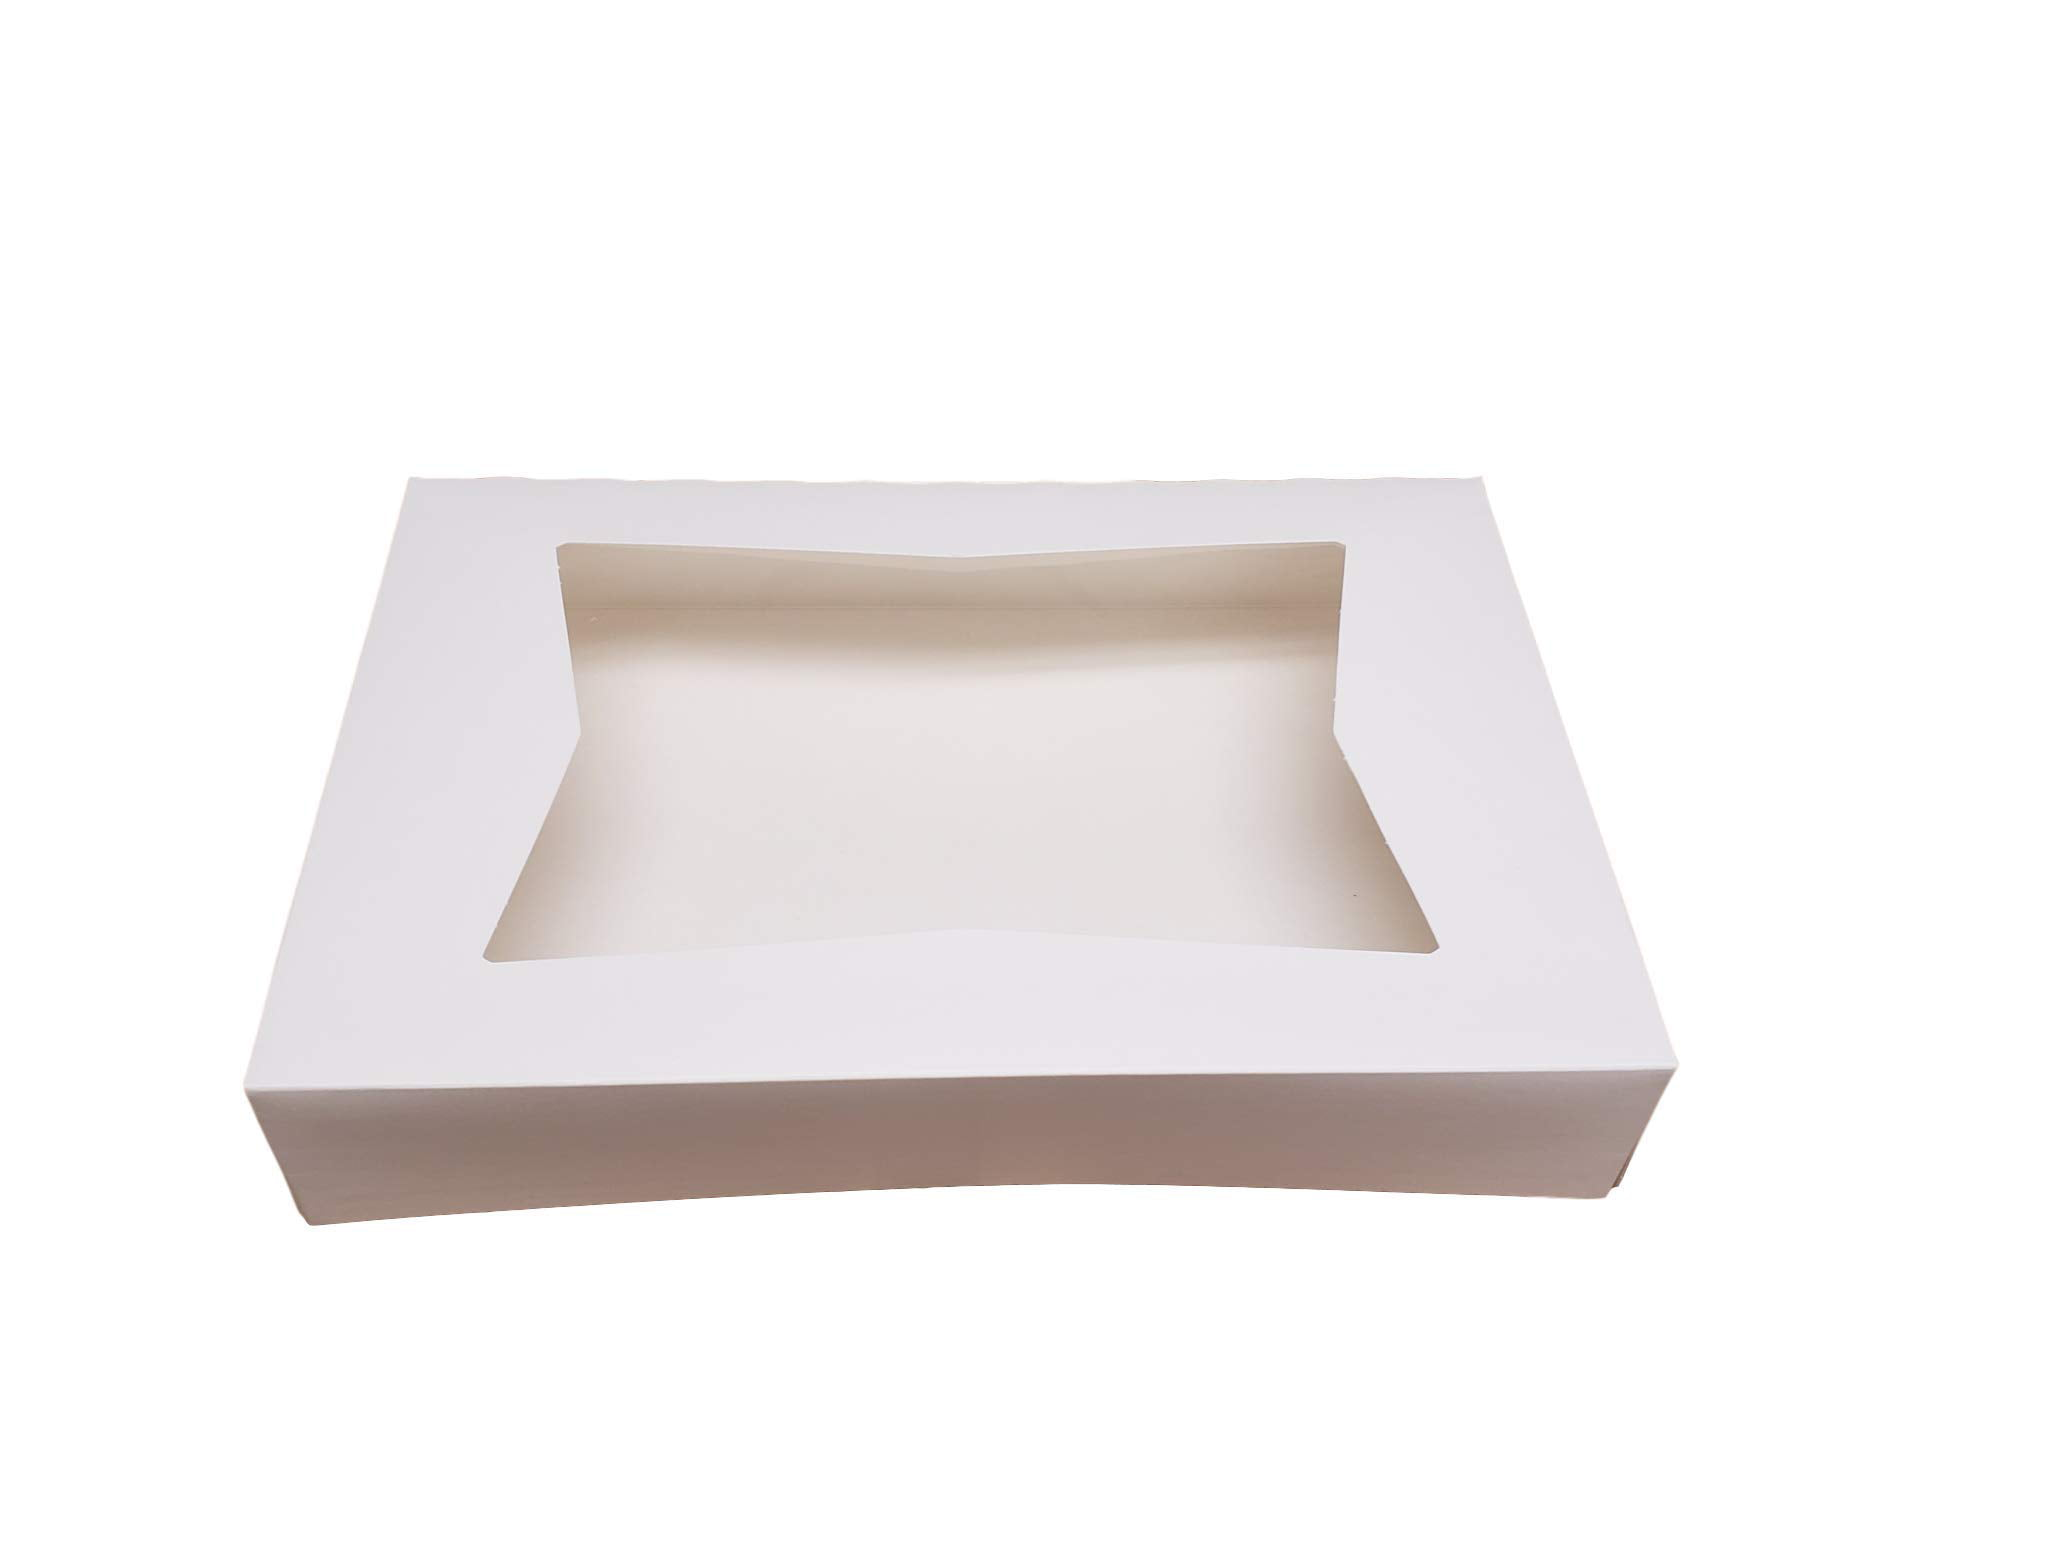 12.5 x 5.5 x 2.5 Mini Cakes and Pastries 20-Pack Cookie Boxes with Window White Bakery Boxes Auto-Popup Treat Boxes for Muffins Donuts